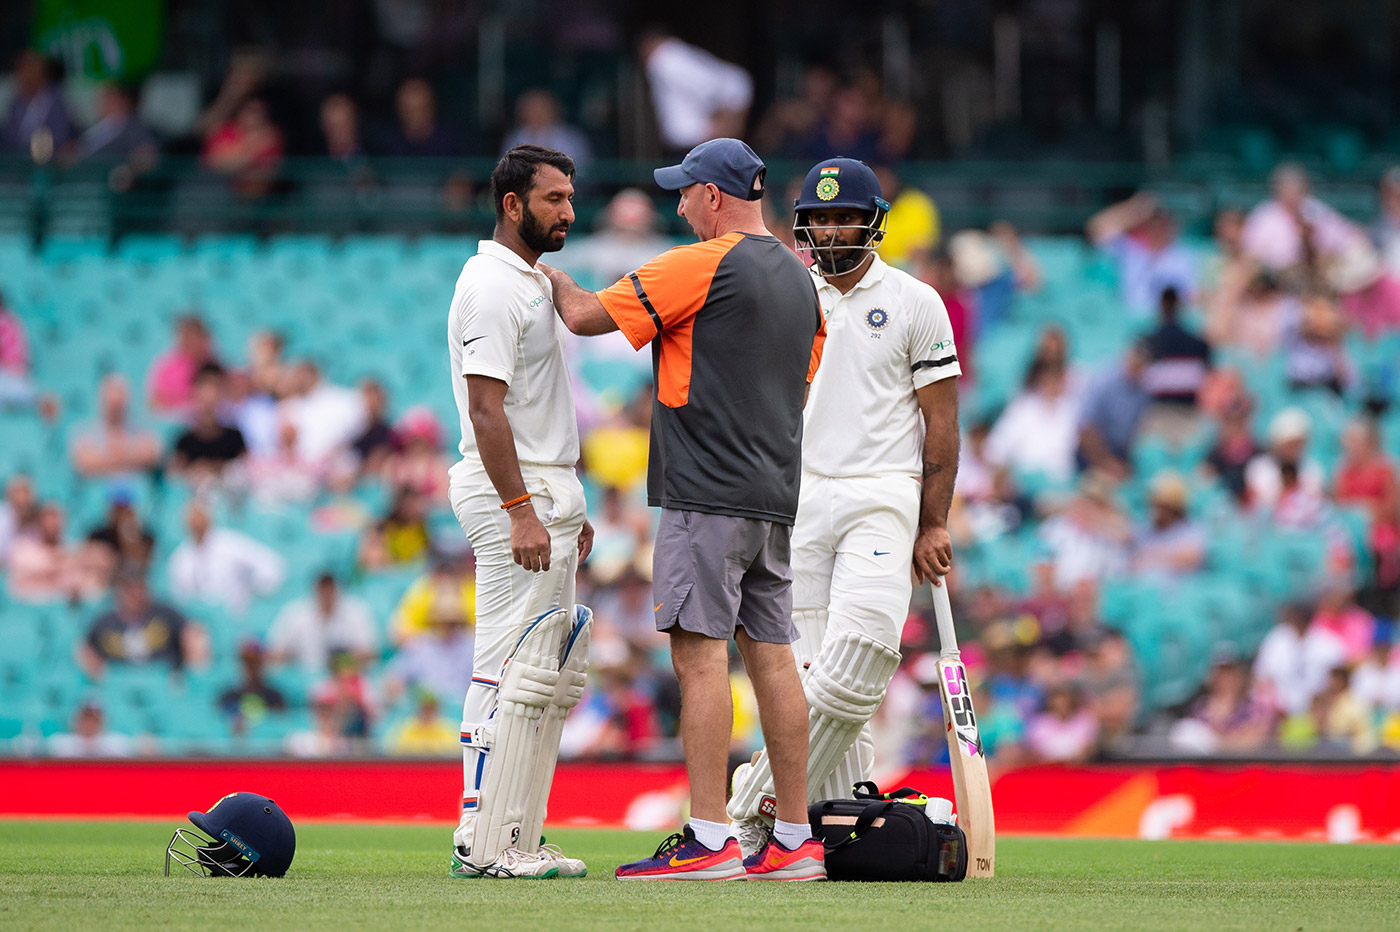 Dr Fix-it: physio Patrick Farhart was ever ready with some TLC for Pujara through the series